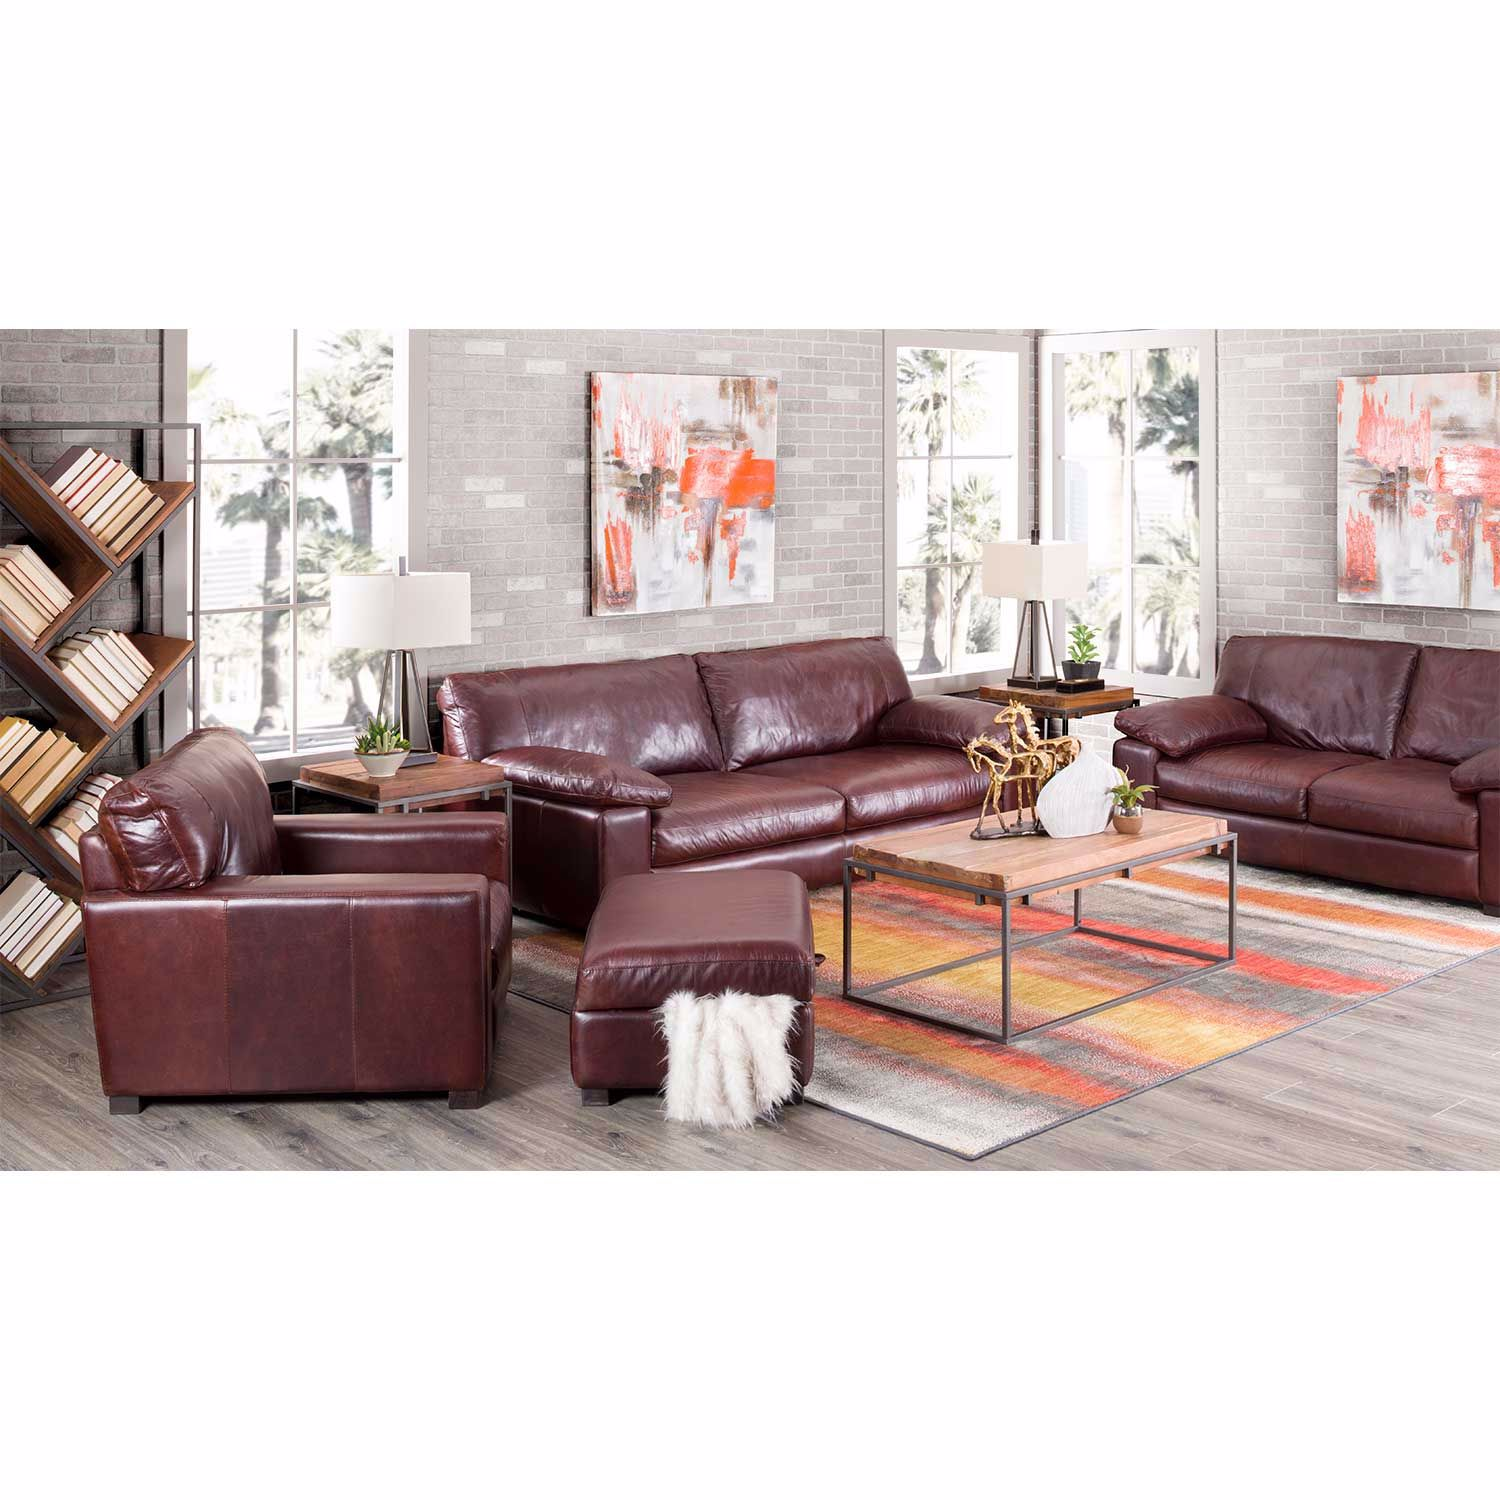 Picture of Barcelona All Leather Storage Ottoman